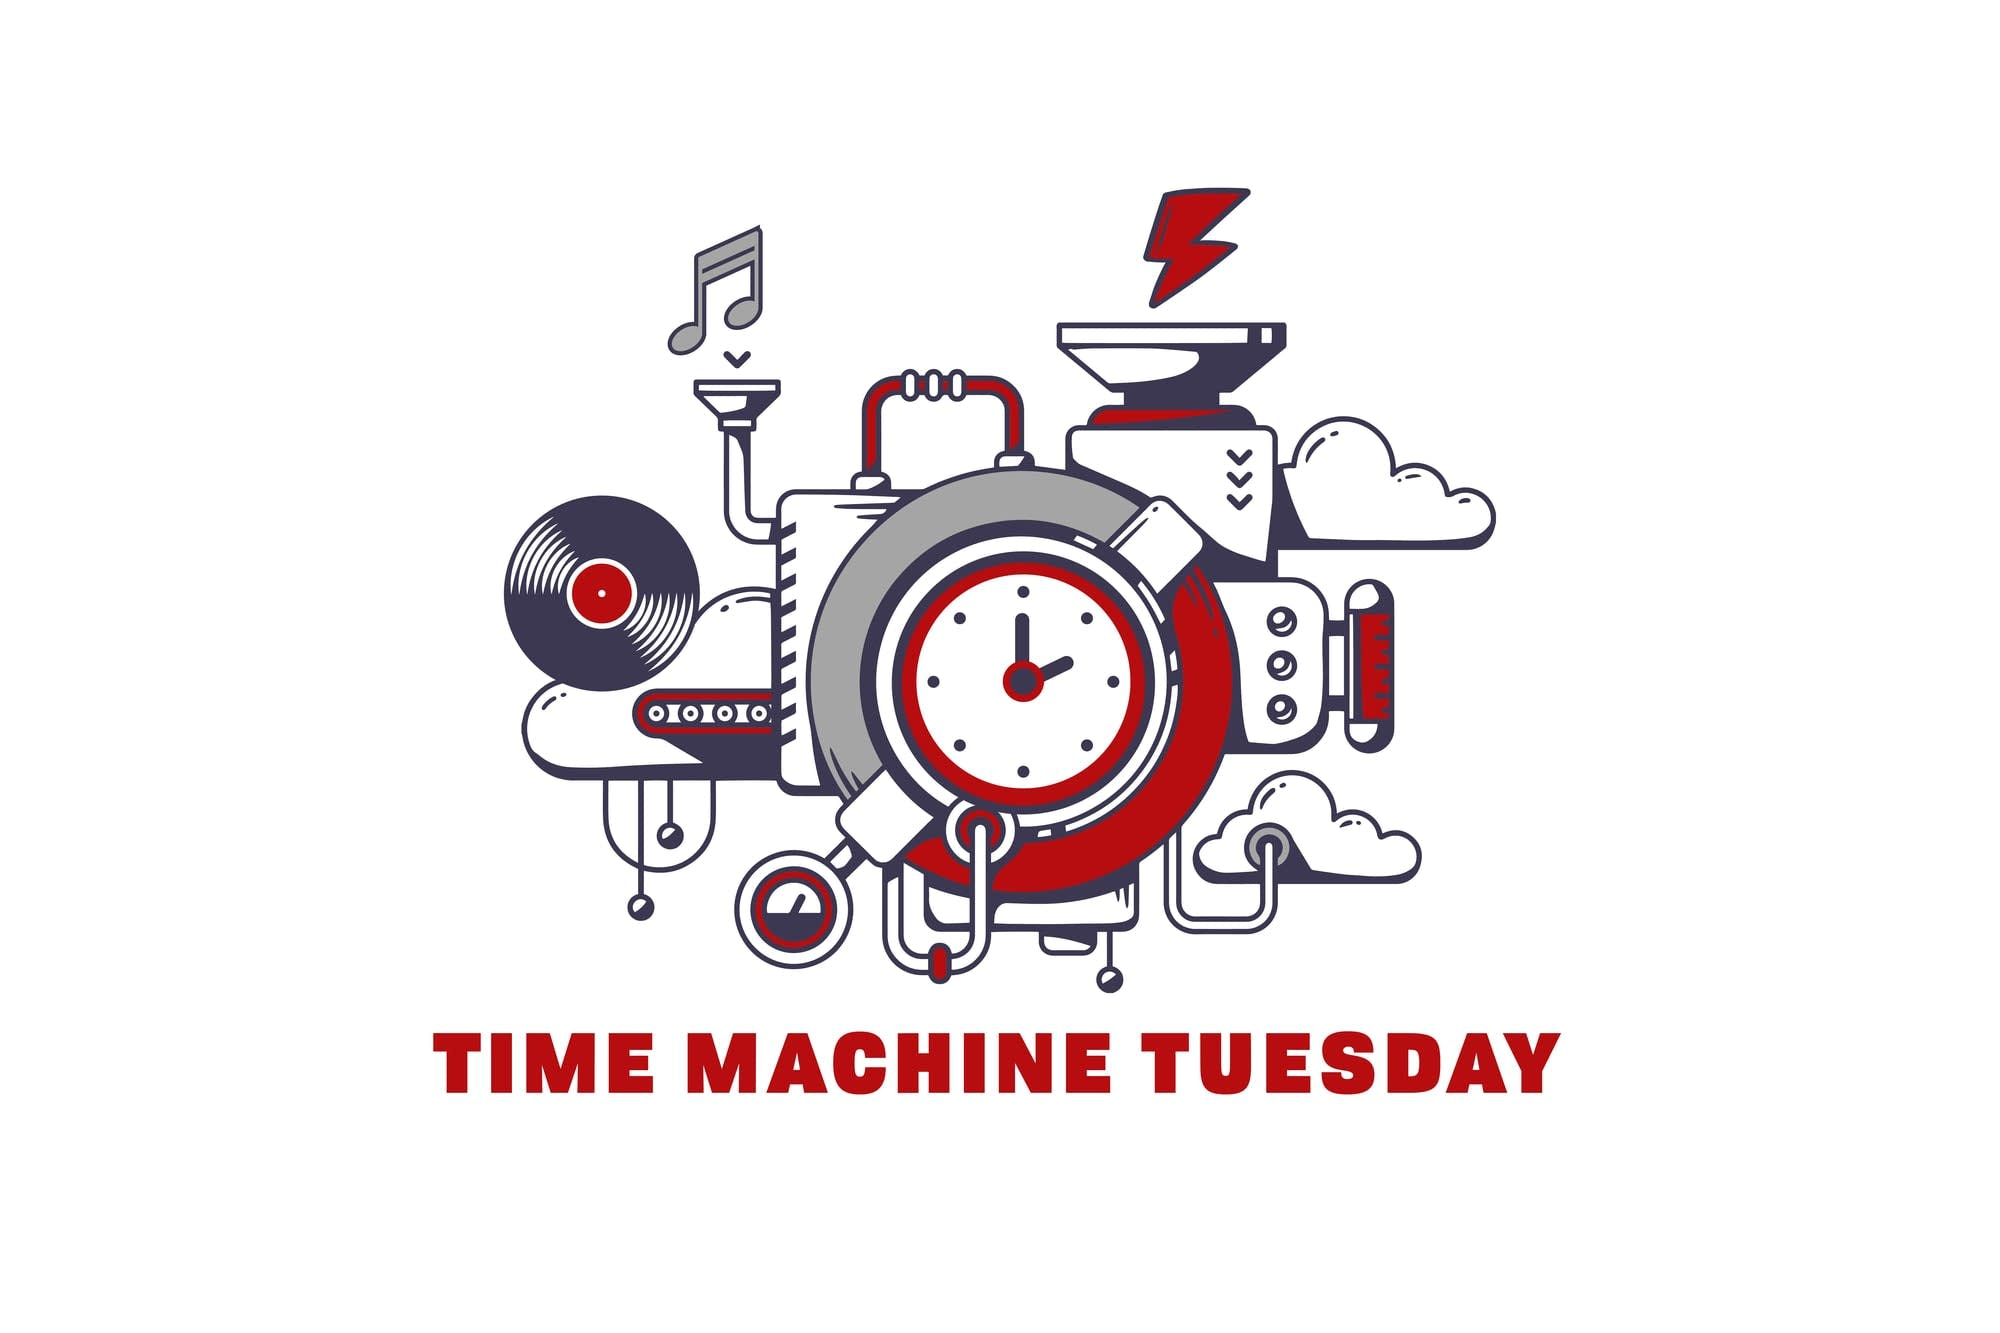 Time Machine Tuesday